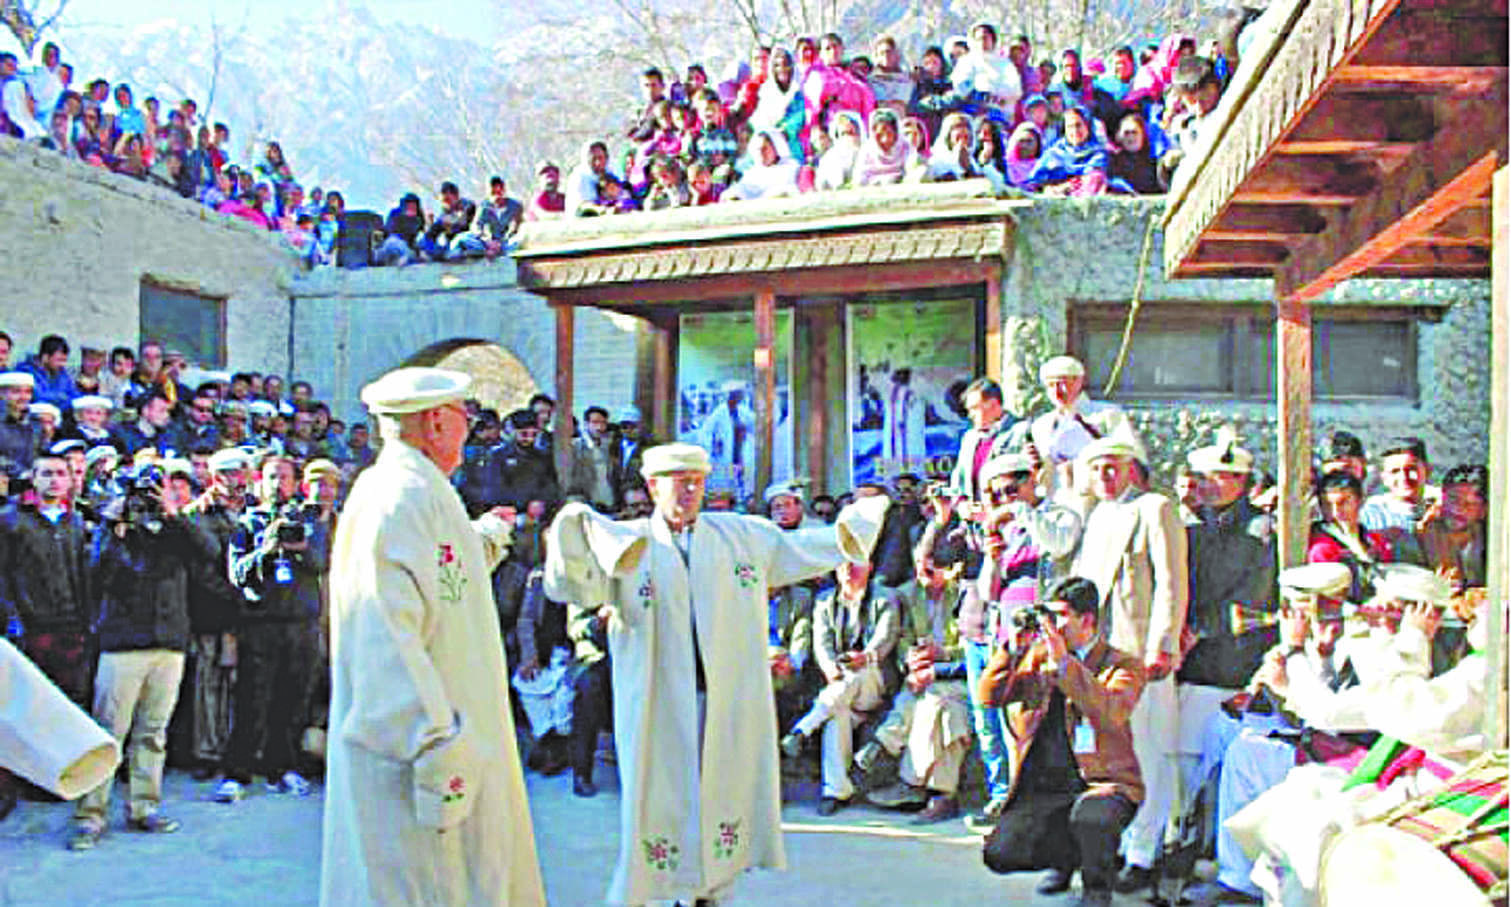 Will the reopening of tourism in Gilgit-Baltistan provide relief to locals?